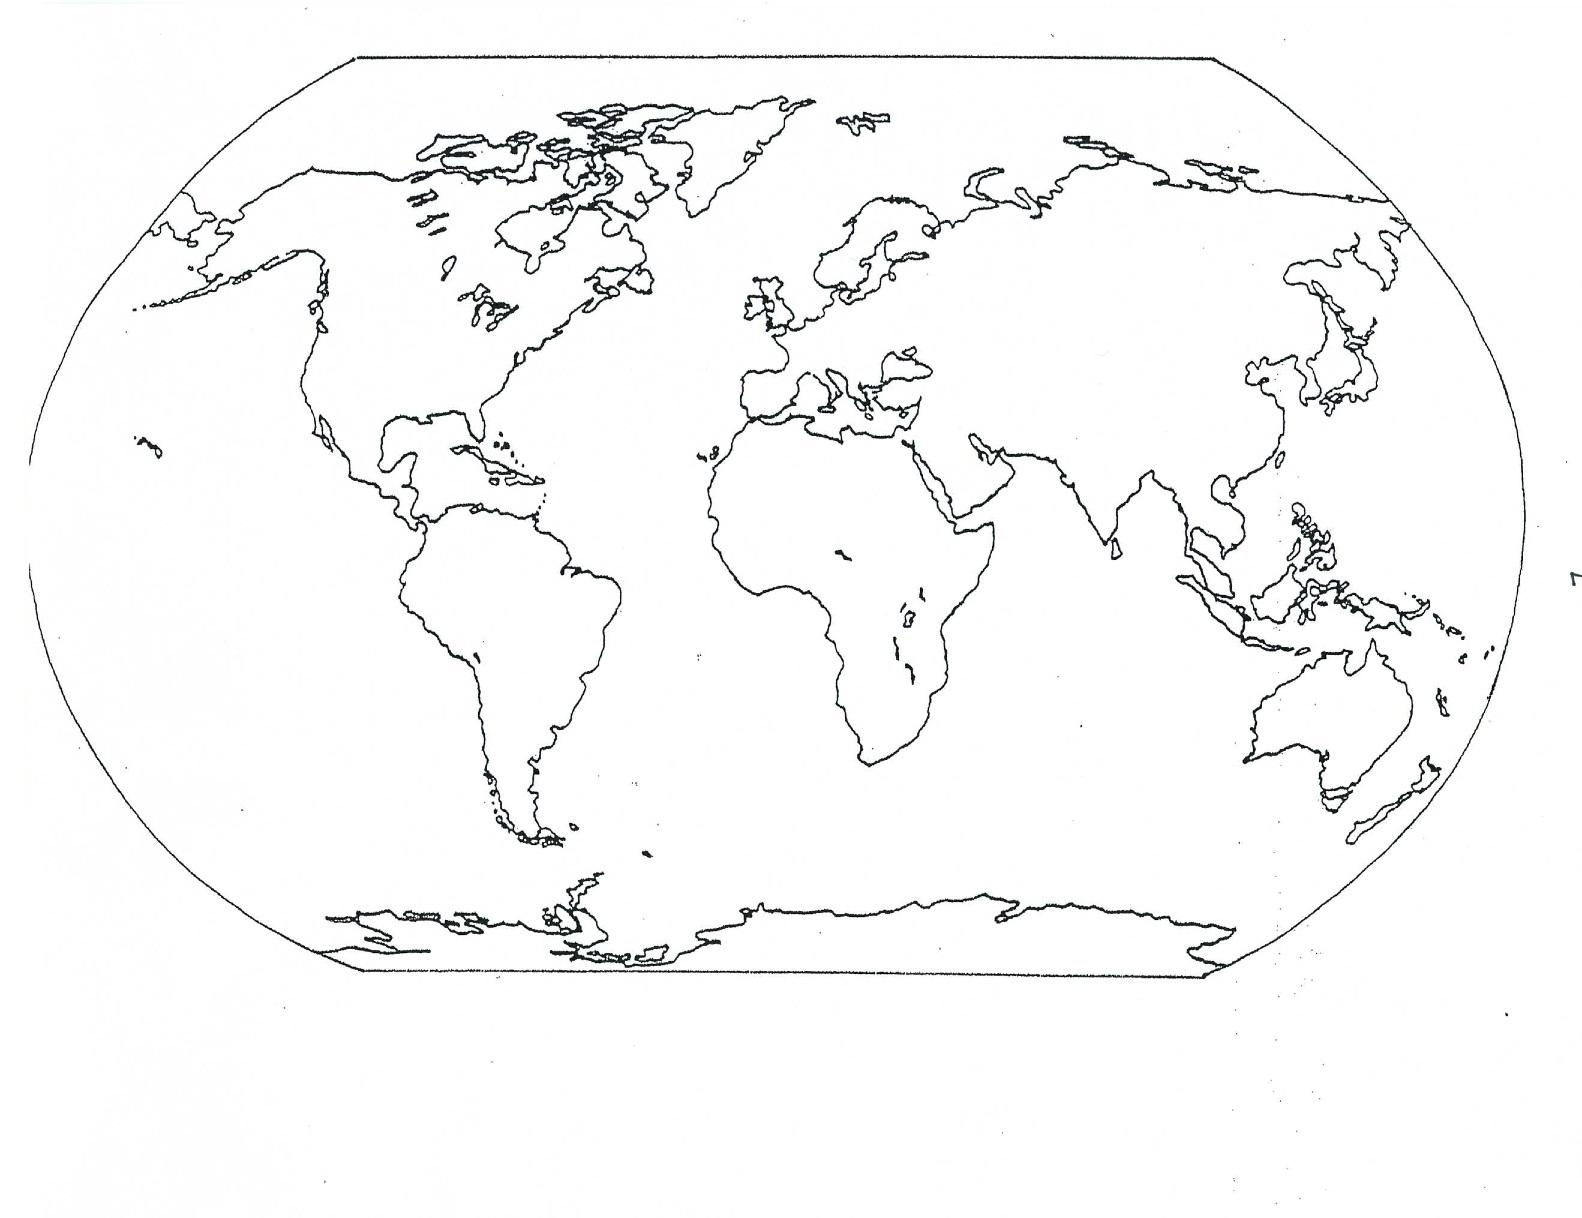 Free map drawing at getdrawings free for personal use free map 1582x1218 free printable world map coloring pages preschool for amusing draw gumiabroncs Choice Image